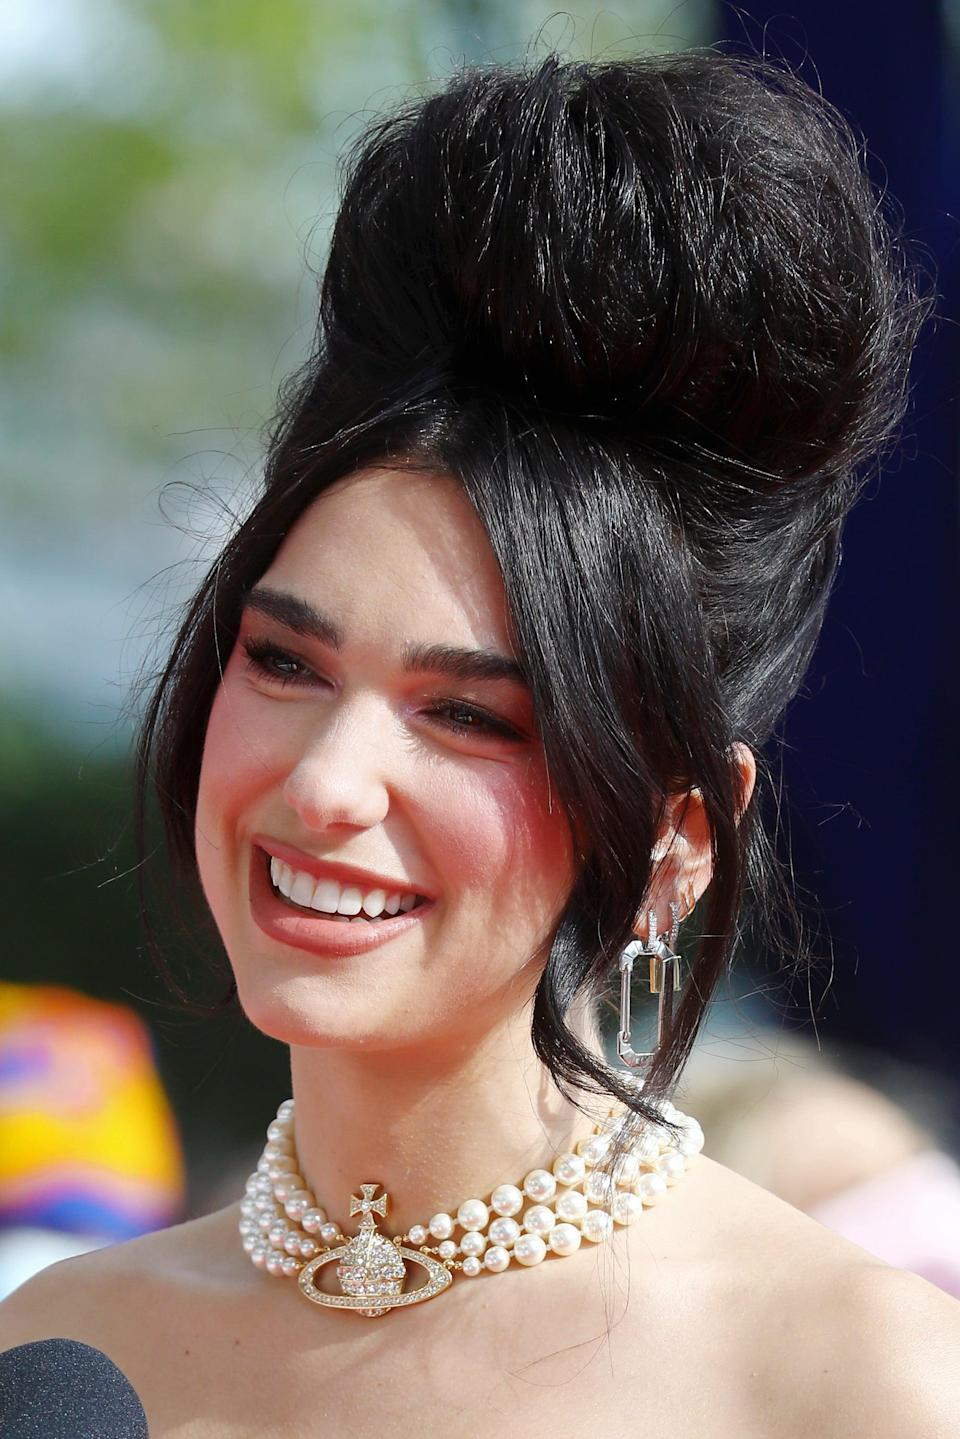 """<p>From Dua Lipa to Anya Taylor Joy to Andra Day, it looks like the bouffant hairstyle is here to stay as the next throwback hair trend making a comeback. The reason is simple: """"It's drama, and while it can definitely be over the top, it can be very underplayed as well,"""" hairstylist <a href=""""https://www.instagram.com/sammcknight1/?hl=en"""" class=""""link rapid-noclick-resp"""" rel=""""nofollow noopener"""" target=""""_blank"""" data-ylk=""""slk:Sam McKnight"""">Sam McKnight</a> told POPSUGAR. """"Plus, a bit of height always makes people feel a bit taller, and a bit grander, and a bit more done if you like. And I think the best way to do them, the modern way to do them, is to have it kind of really undone and have it not look too perfect."""" </p>"""